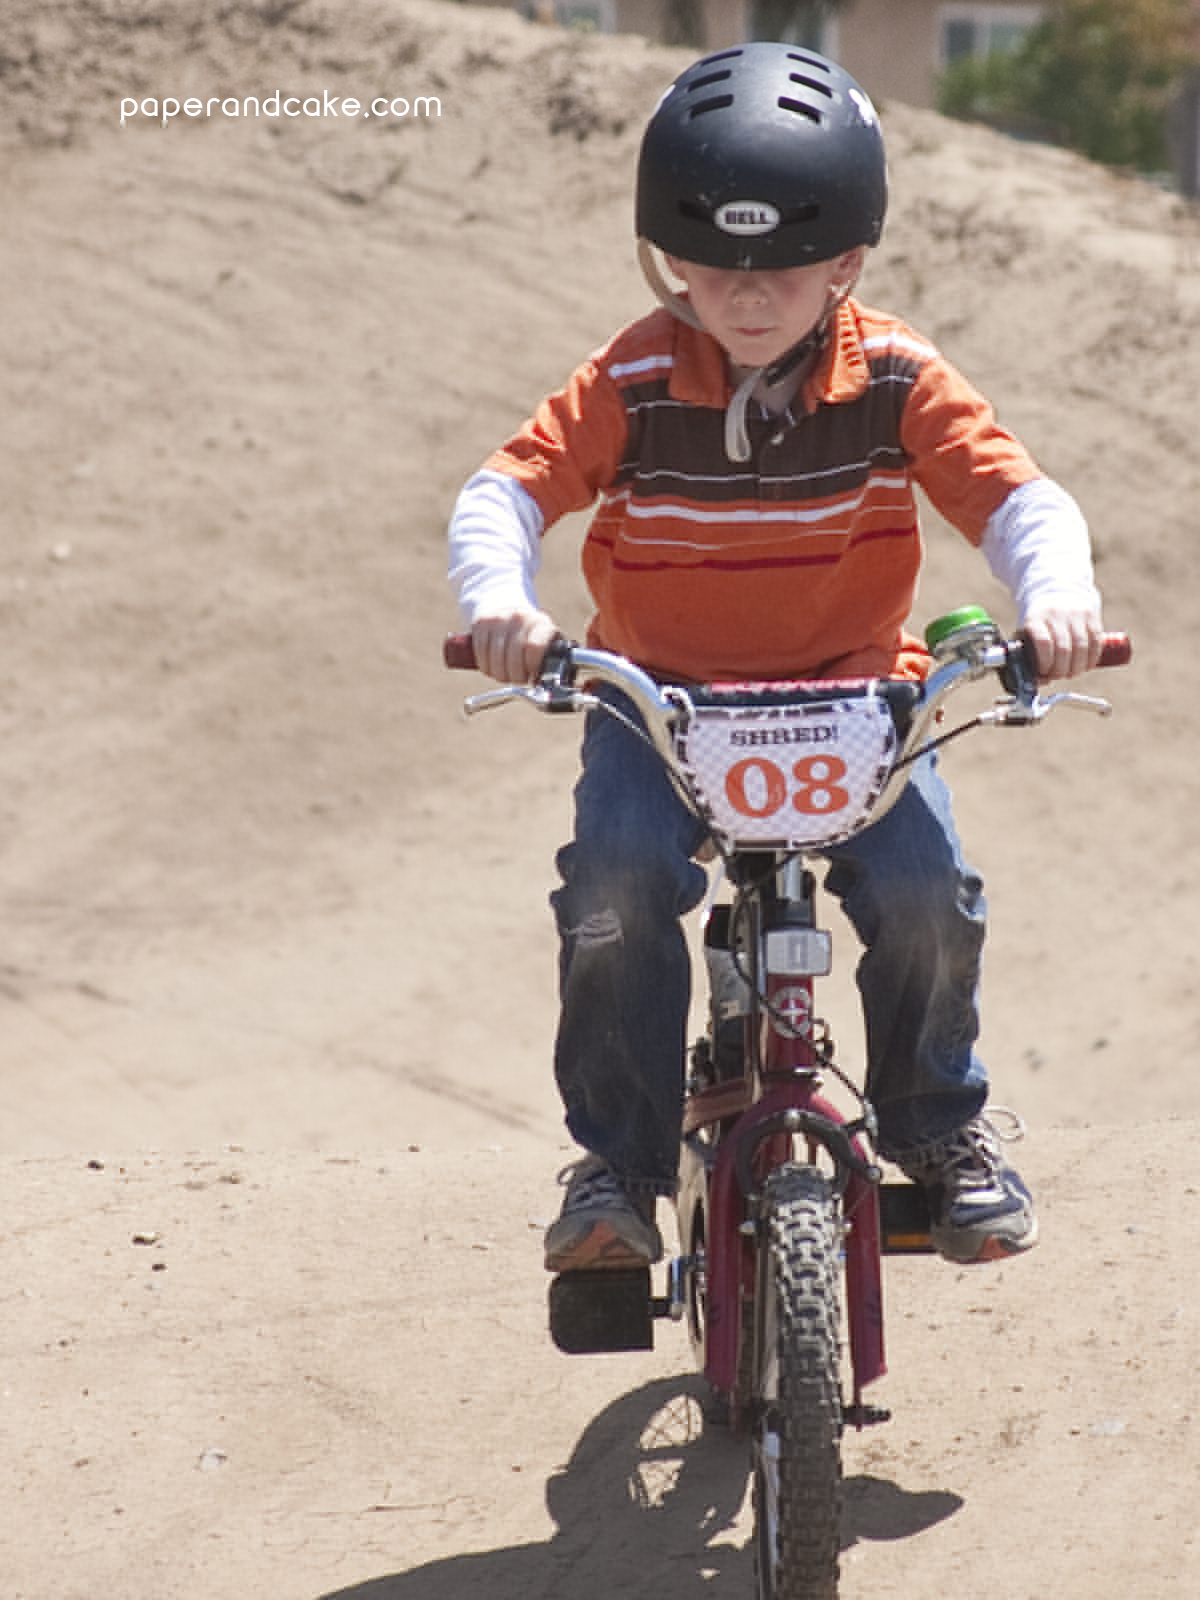 Bmx Dirt Bike Printable Birthday Party Paper And Cake